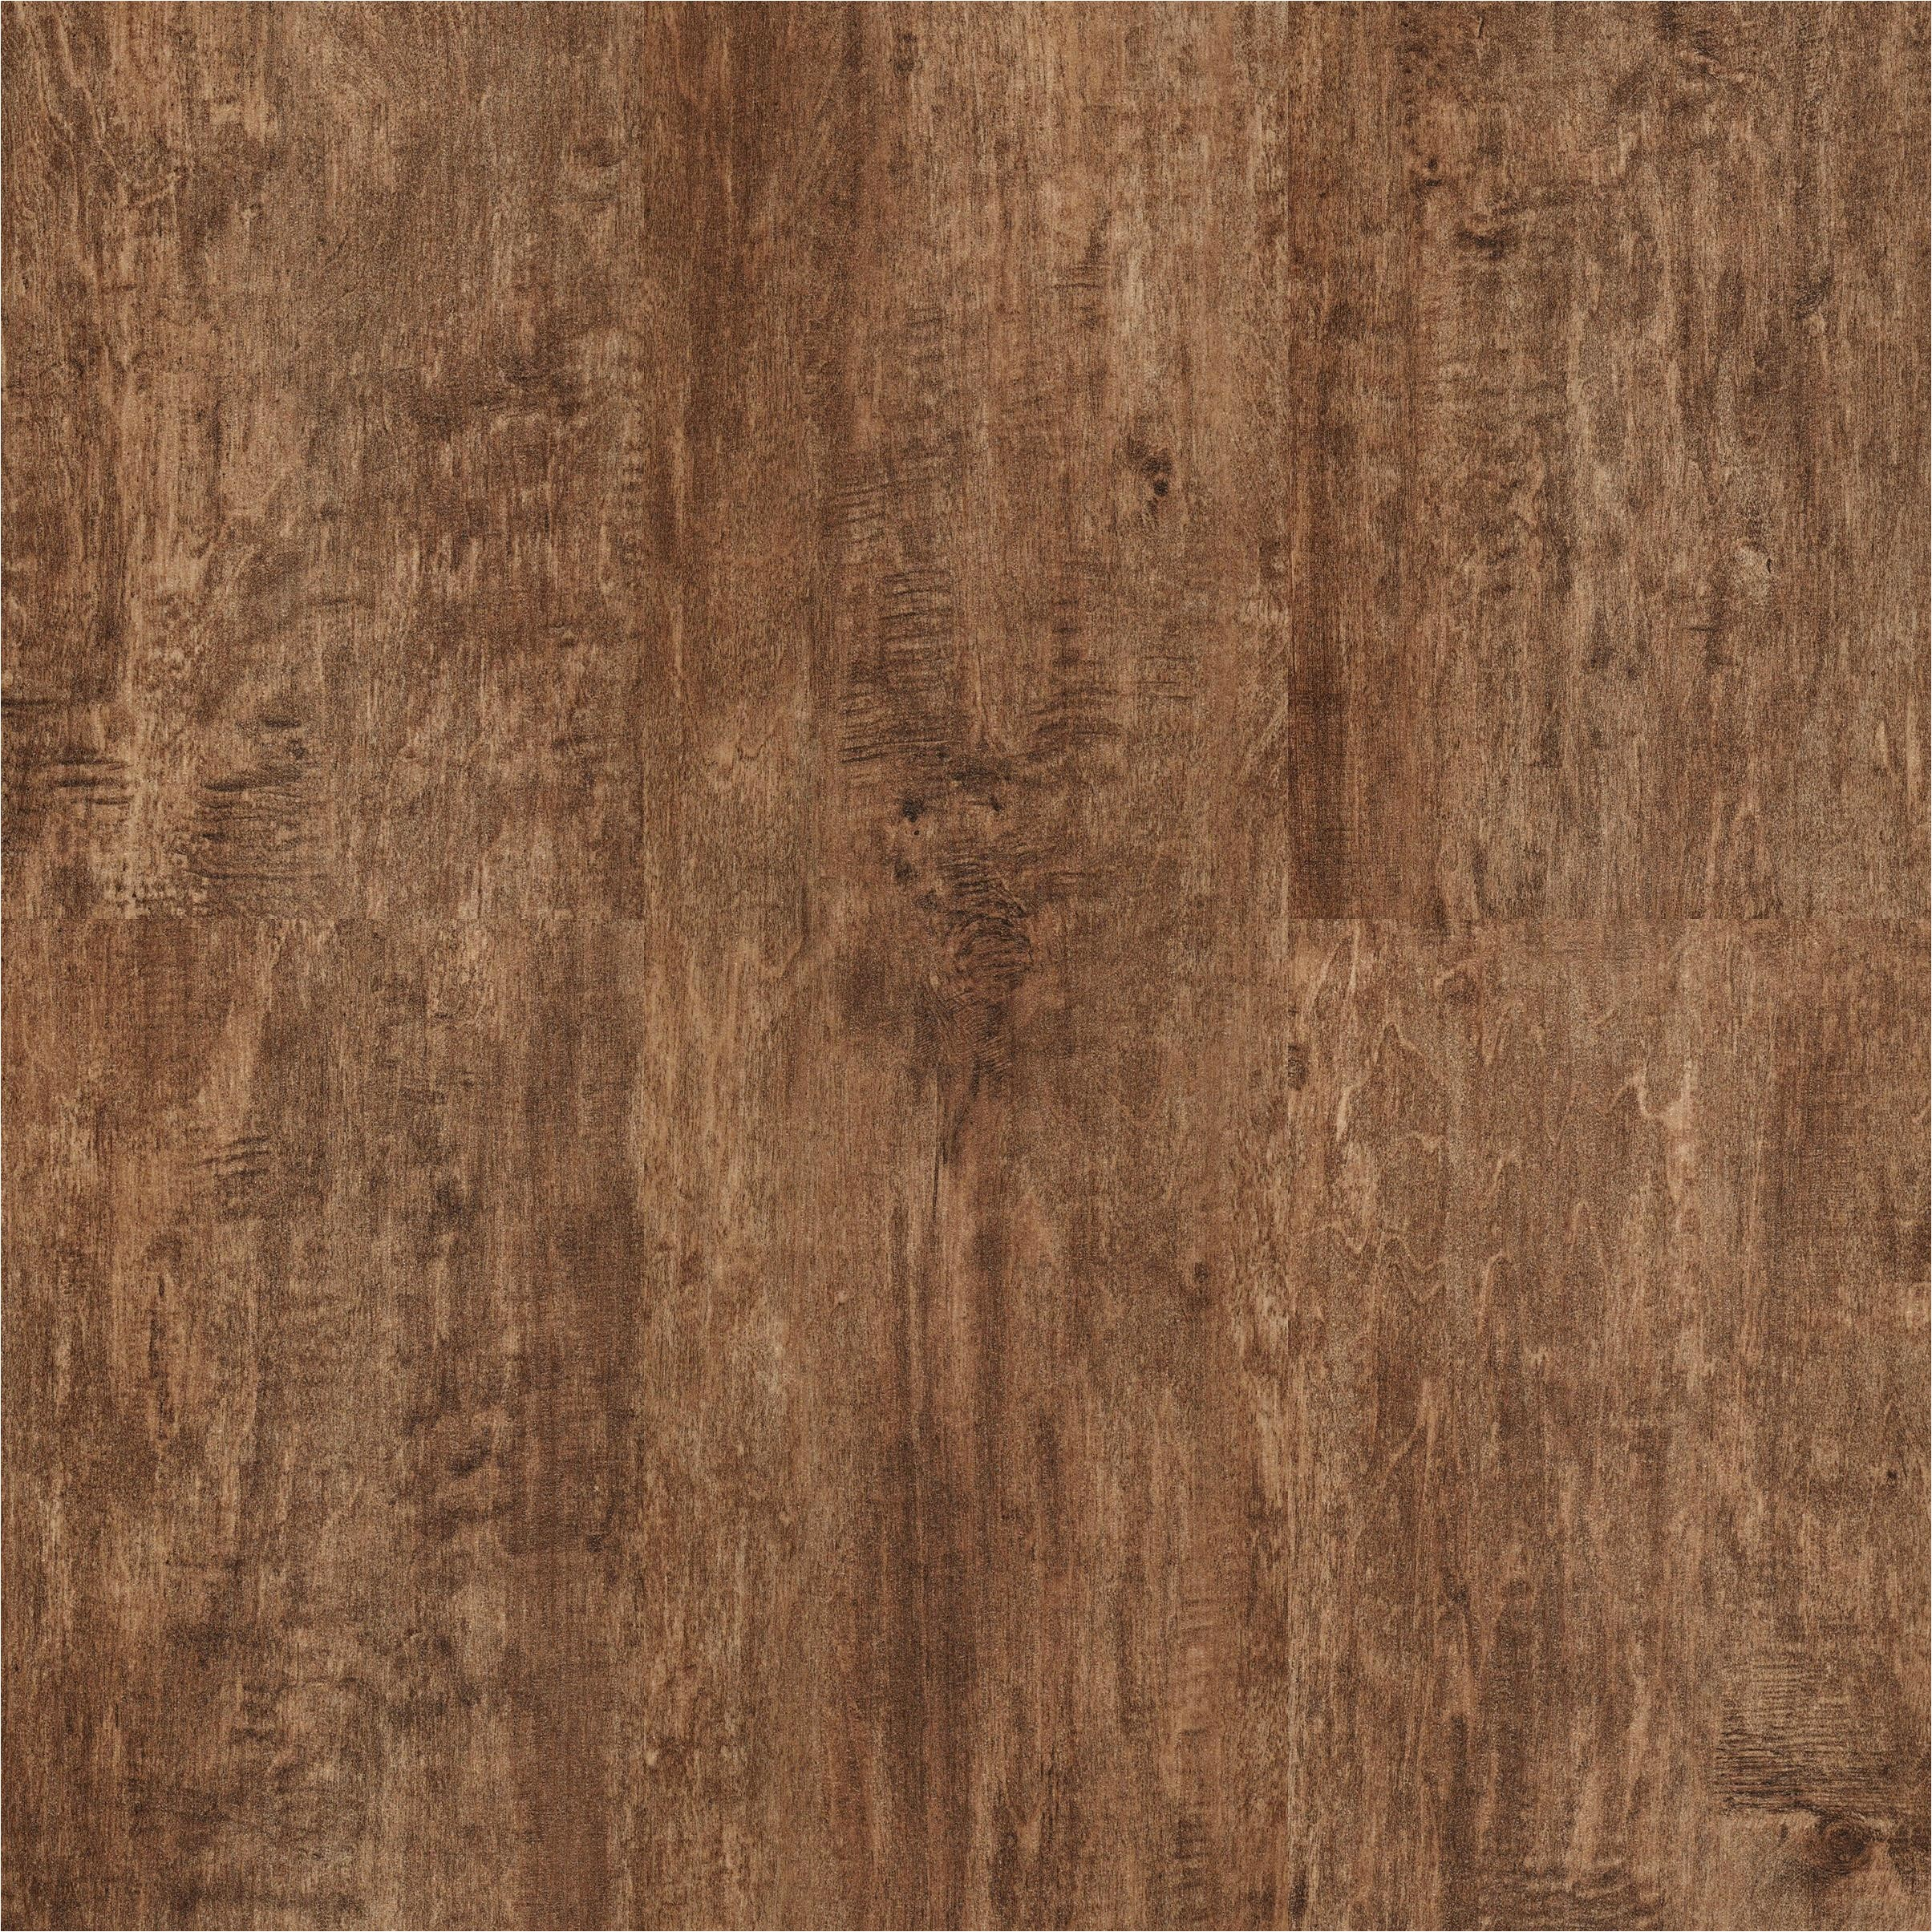 Premier Glueless Laminate Flooring Light Maple Premier Glueless Laminate Flooring Light Maple